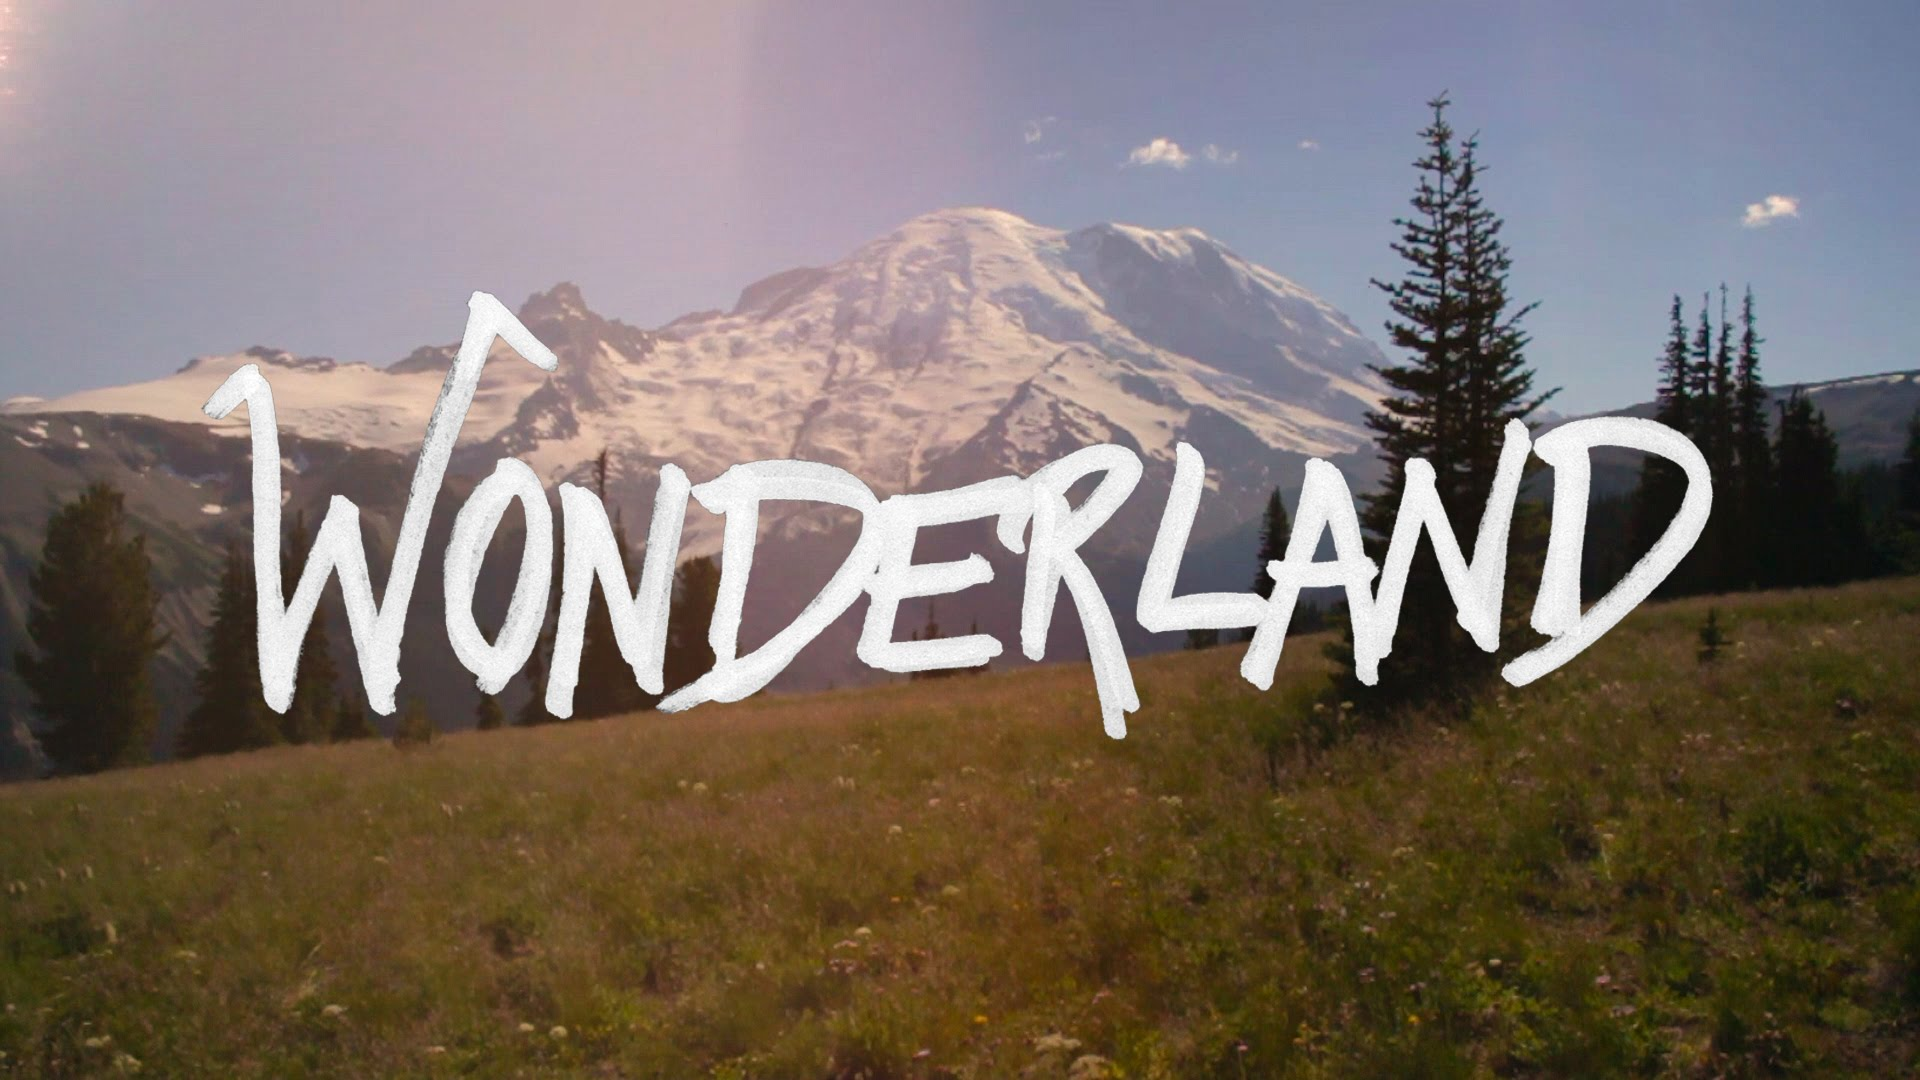 'Wonderland' Documentary on Gary Robbins' FKT around Mount Rainier